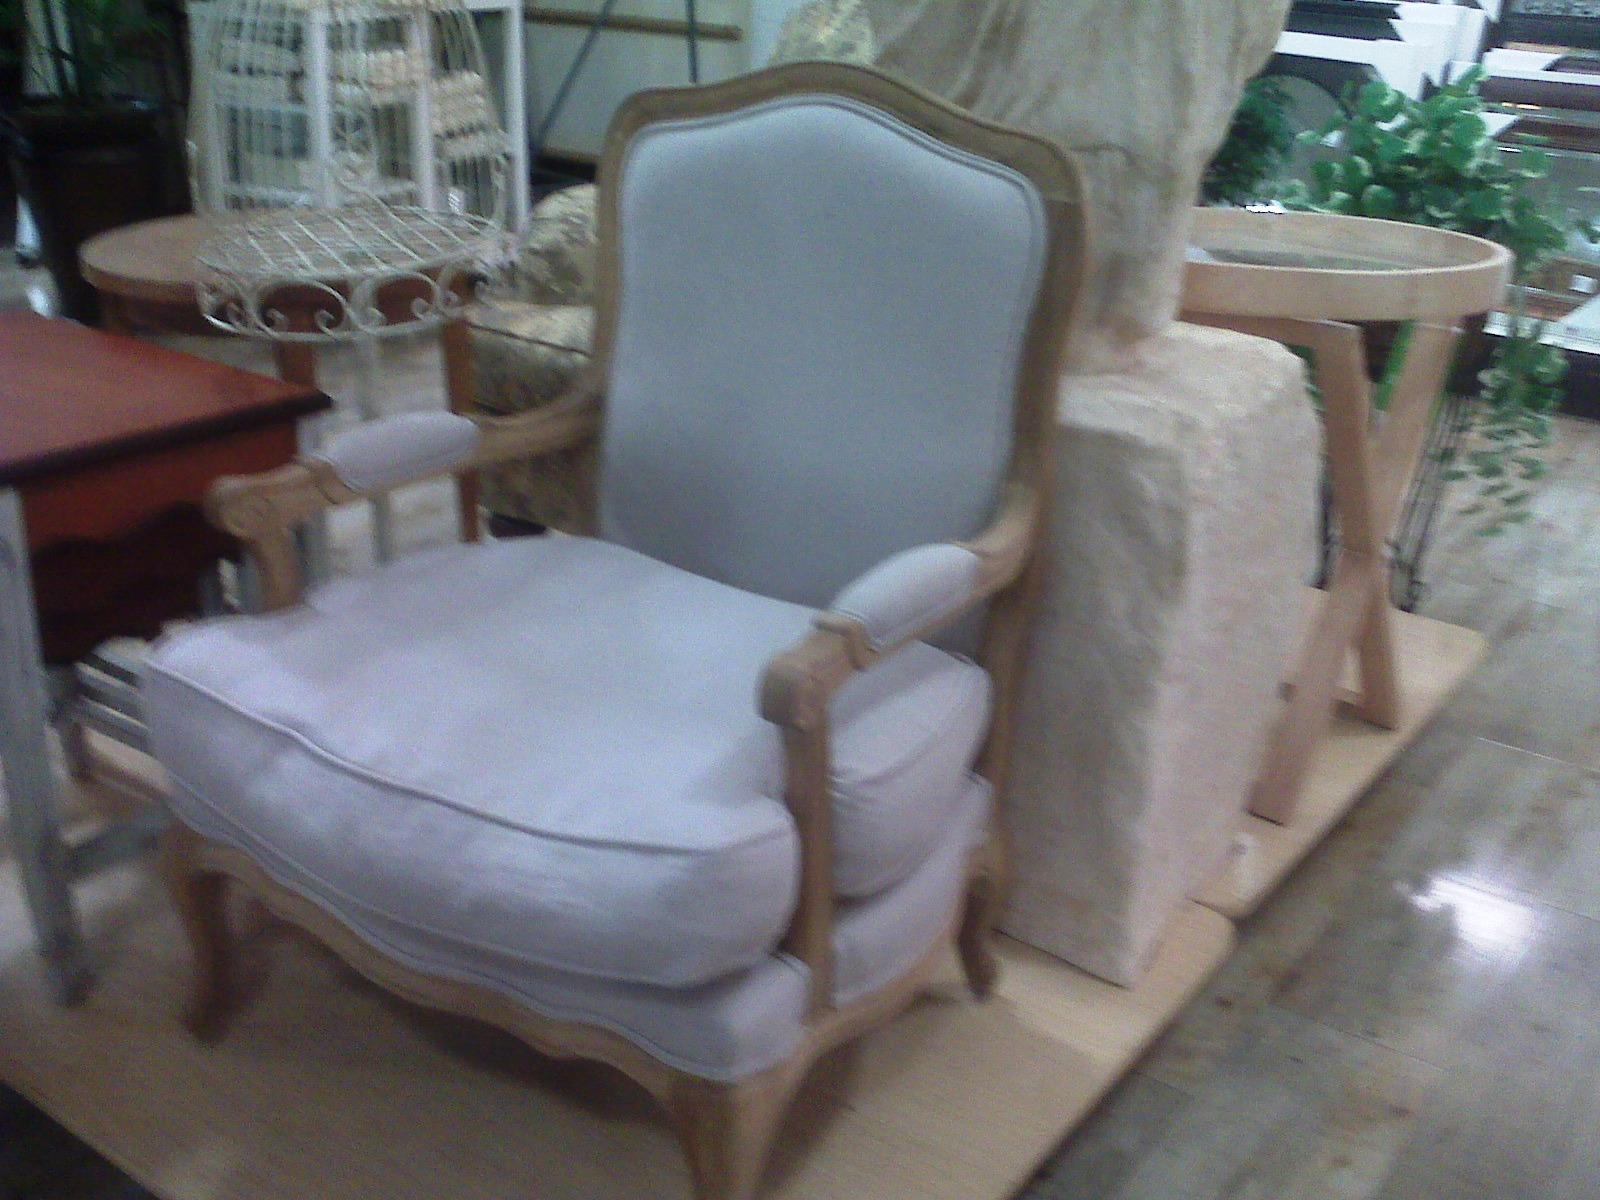 HG French Chair. Just in Dreamy Bleached Wood Furniture at Home Goods Store   Karen